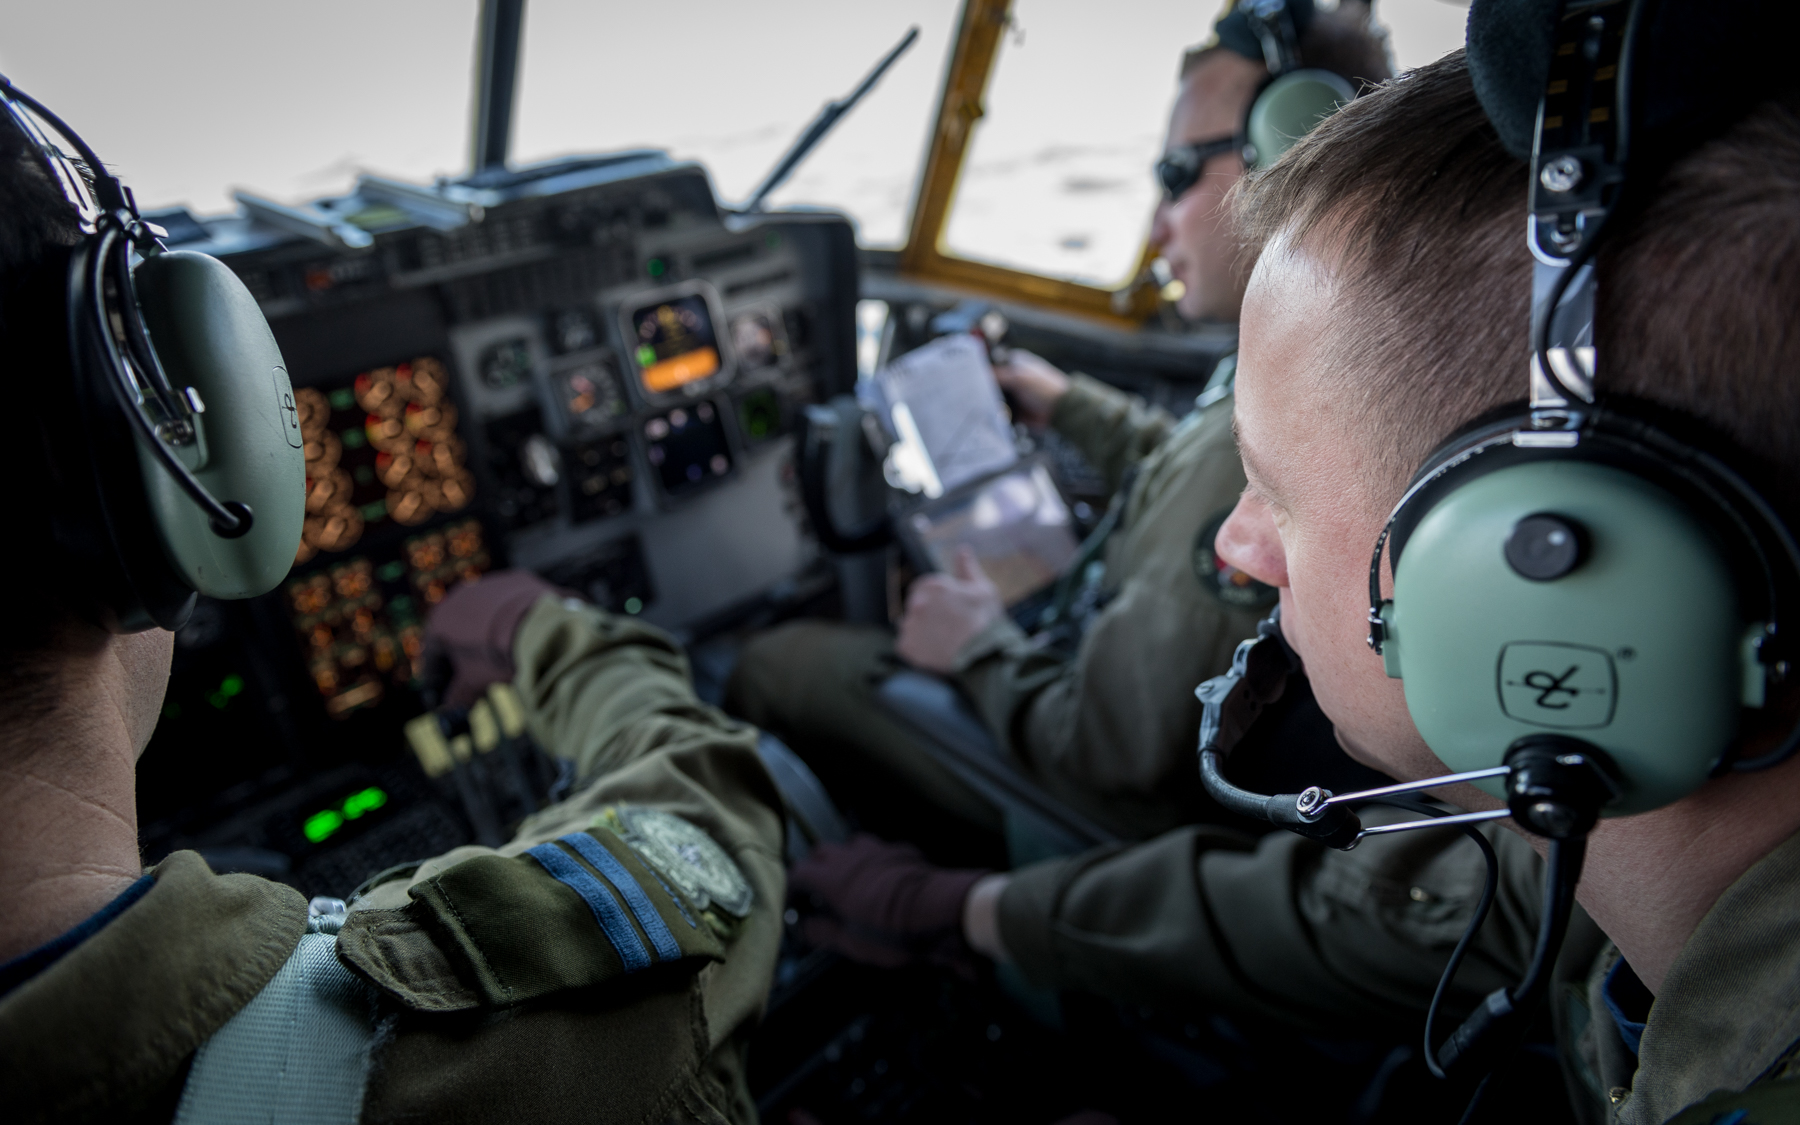 Flight engineer Sergeant Alex Cloutier (foreground, right) monitors aircraft systems. PHOTO: Corporal Neil Clarkson, GD05-2018-0060-016